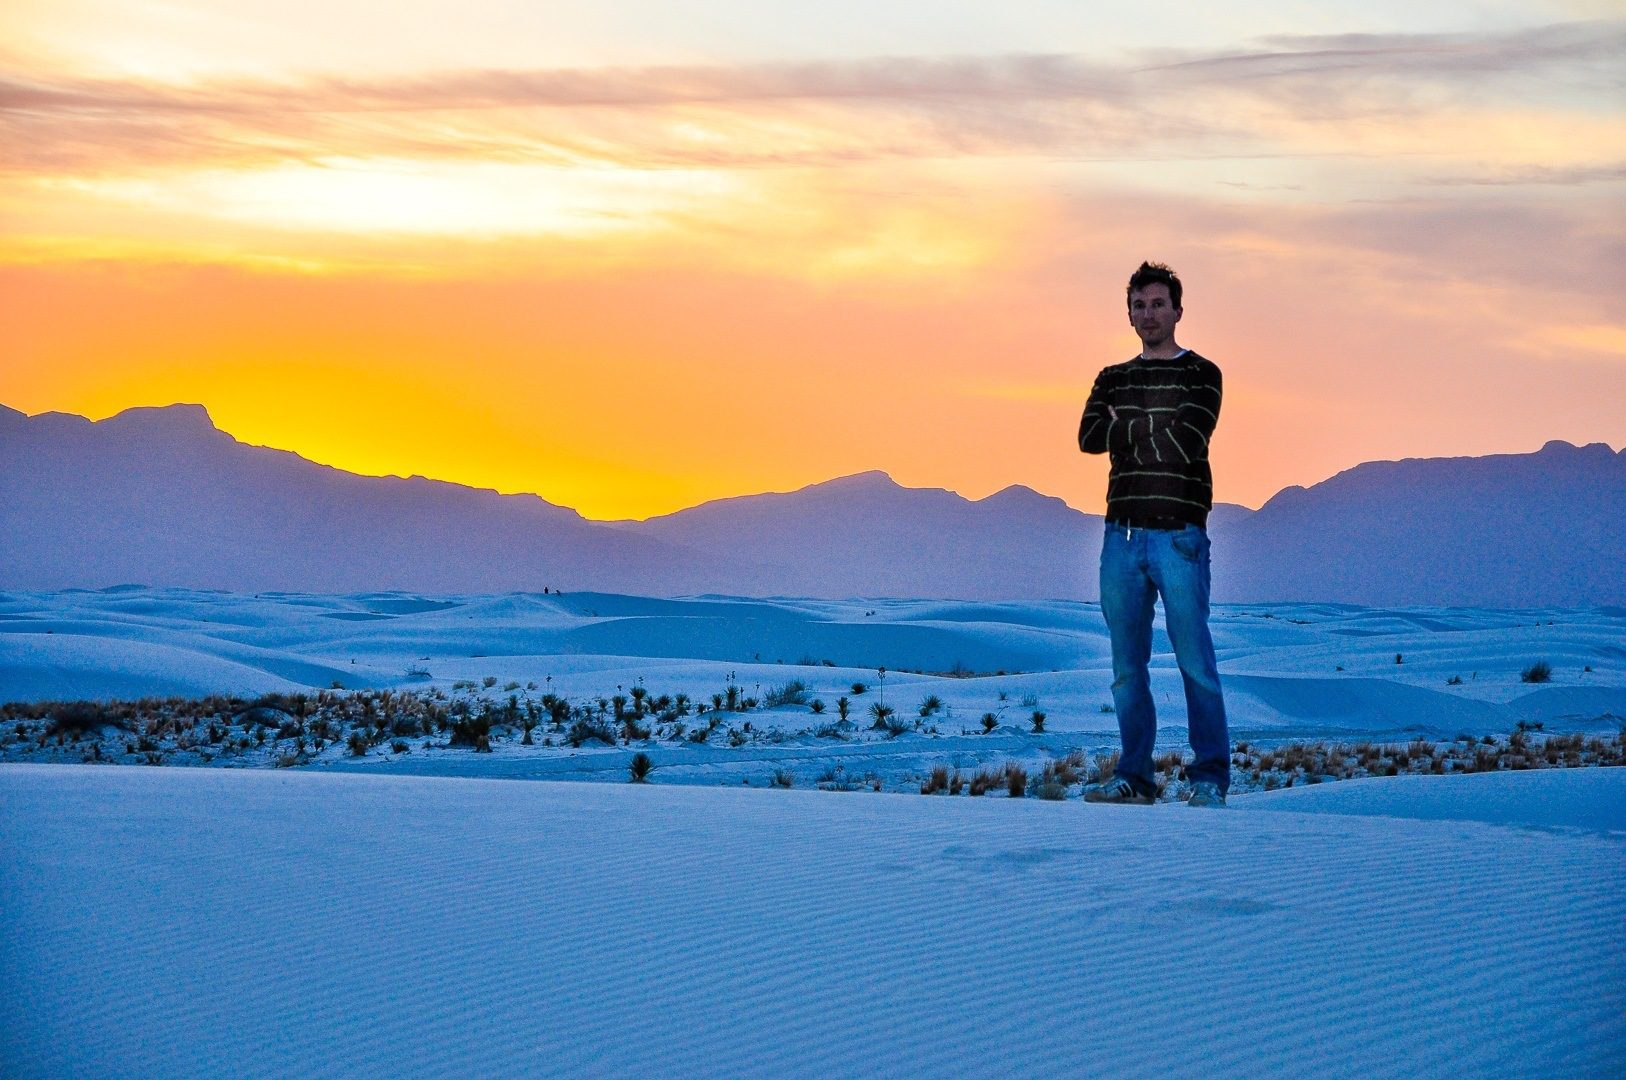 White Sands National Monument in New Mexico at sunset.